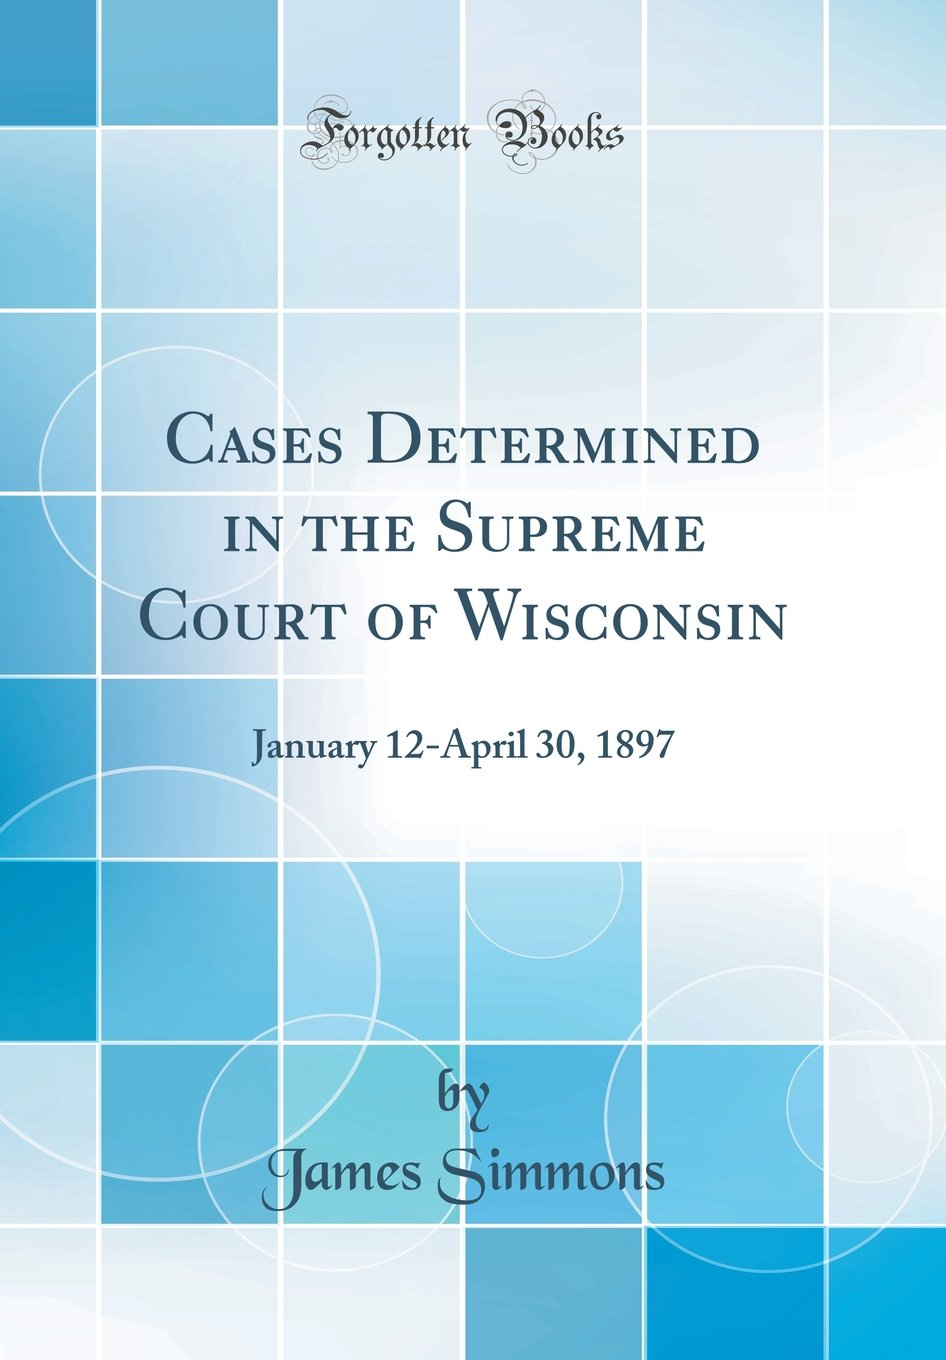 Cases Determined in the Supreme Court of Wisconsin: January 12-April 30, 1897 (Classic Reprint) pdf epub